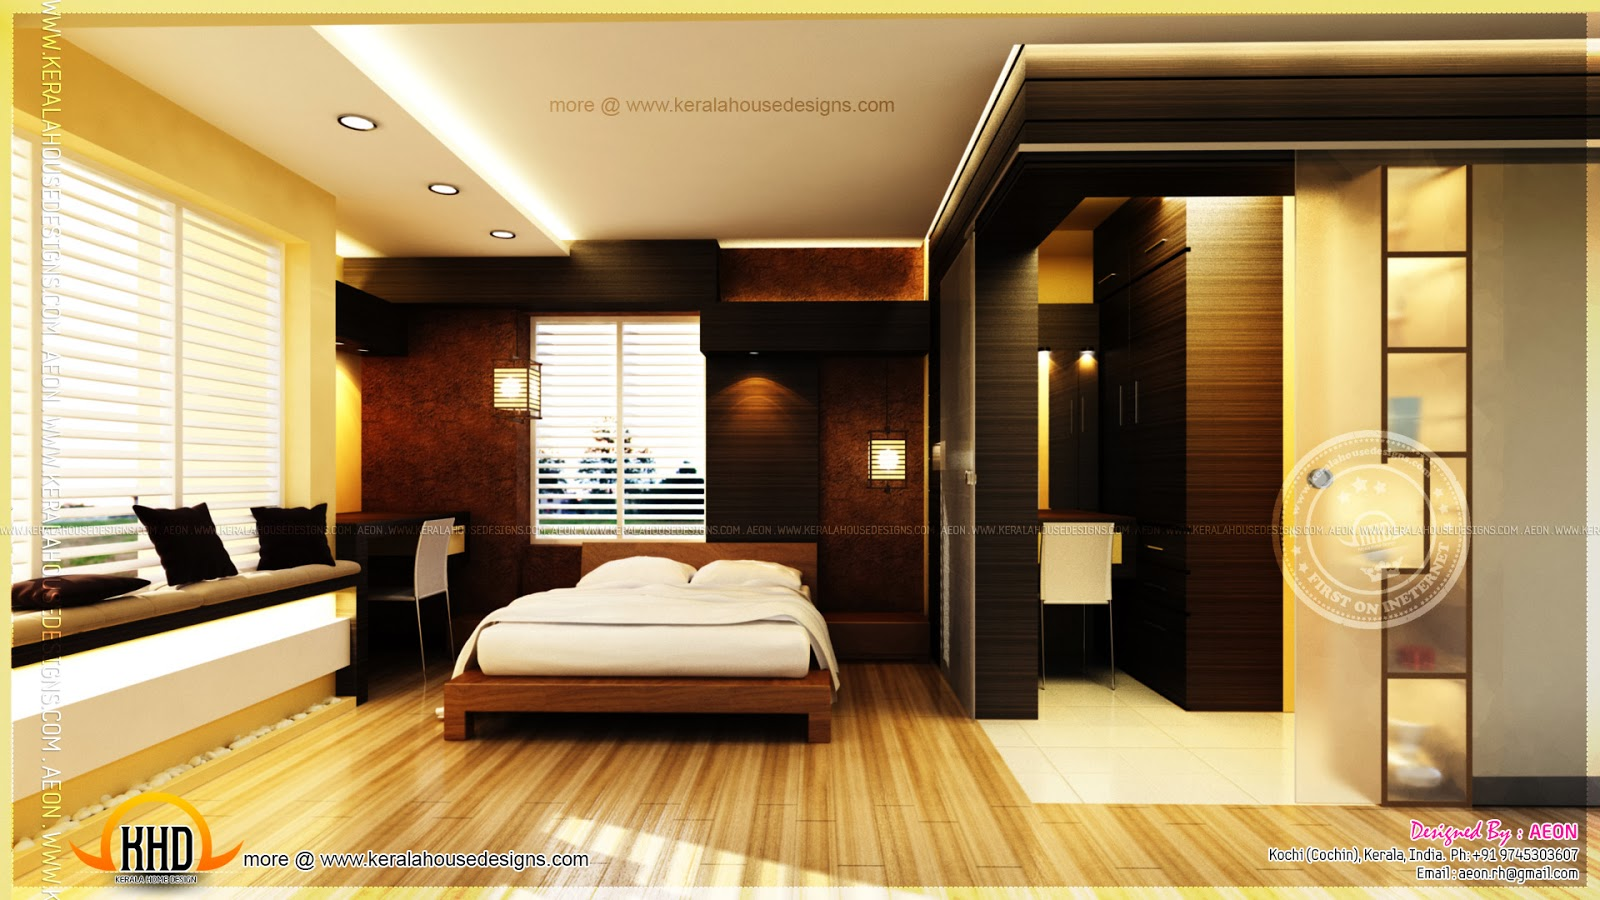 Apartment interior designs by aeon cochin kerala home design and floor plans - Bedroom apartment interior design ideas ...